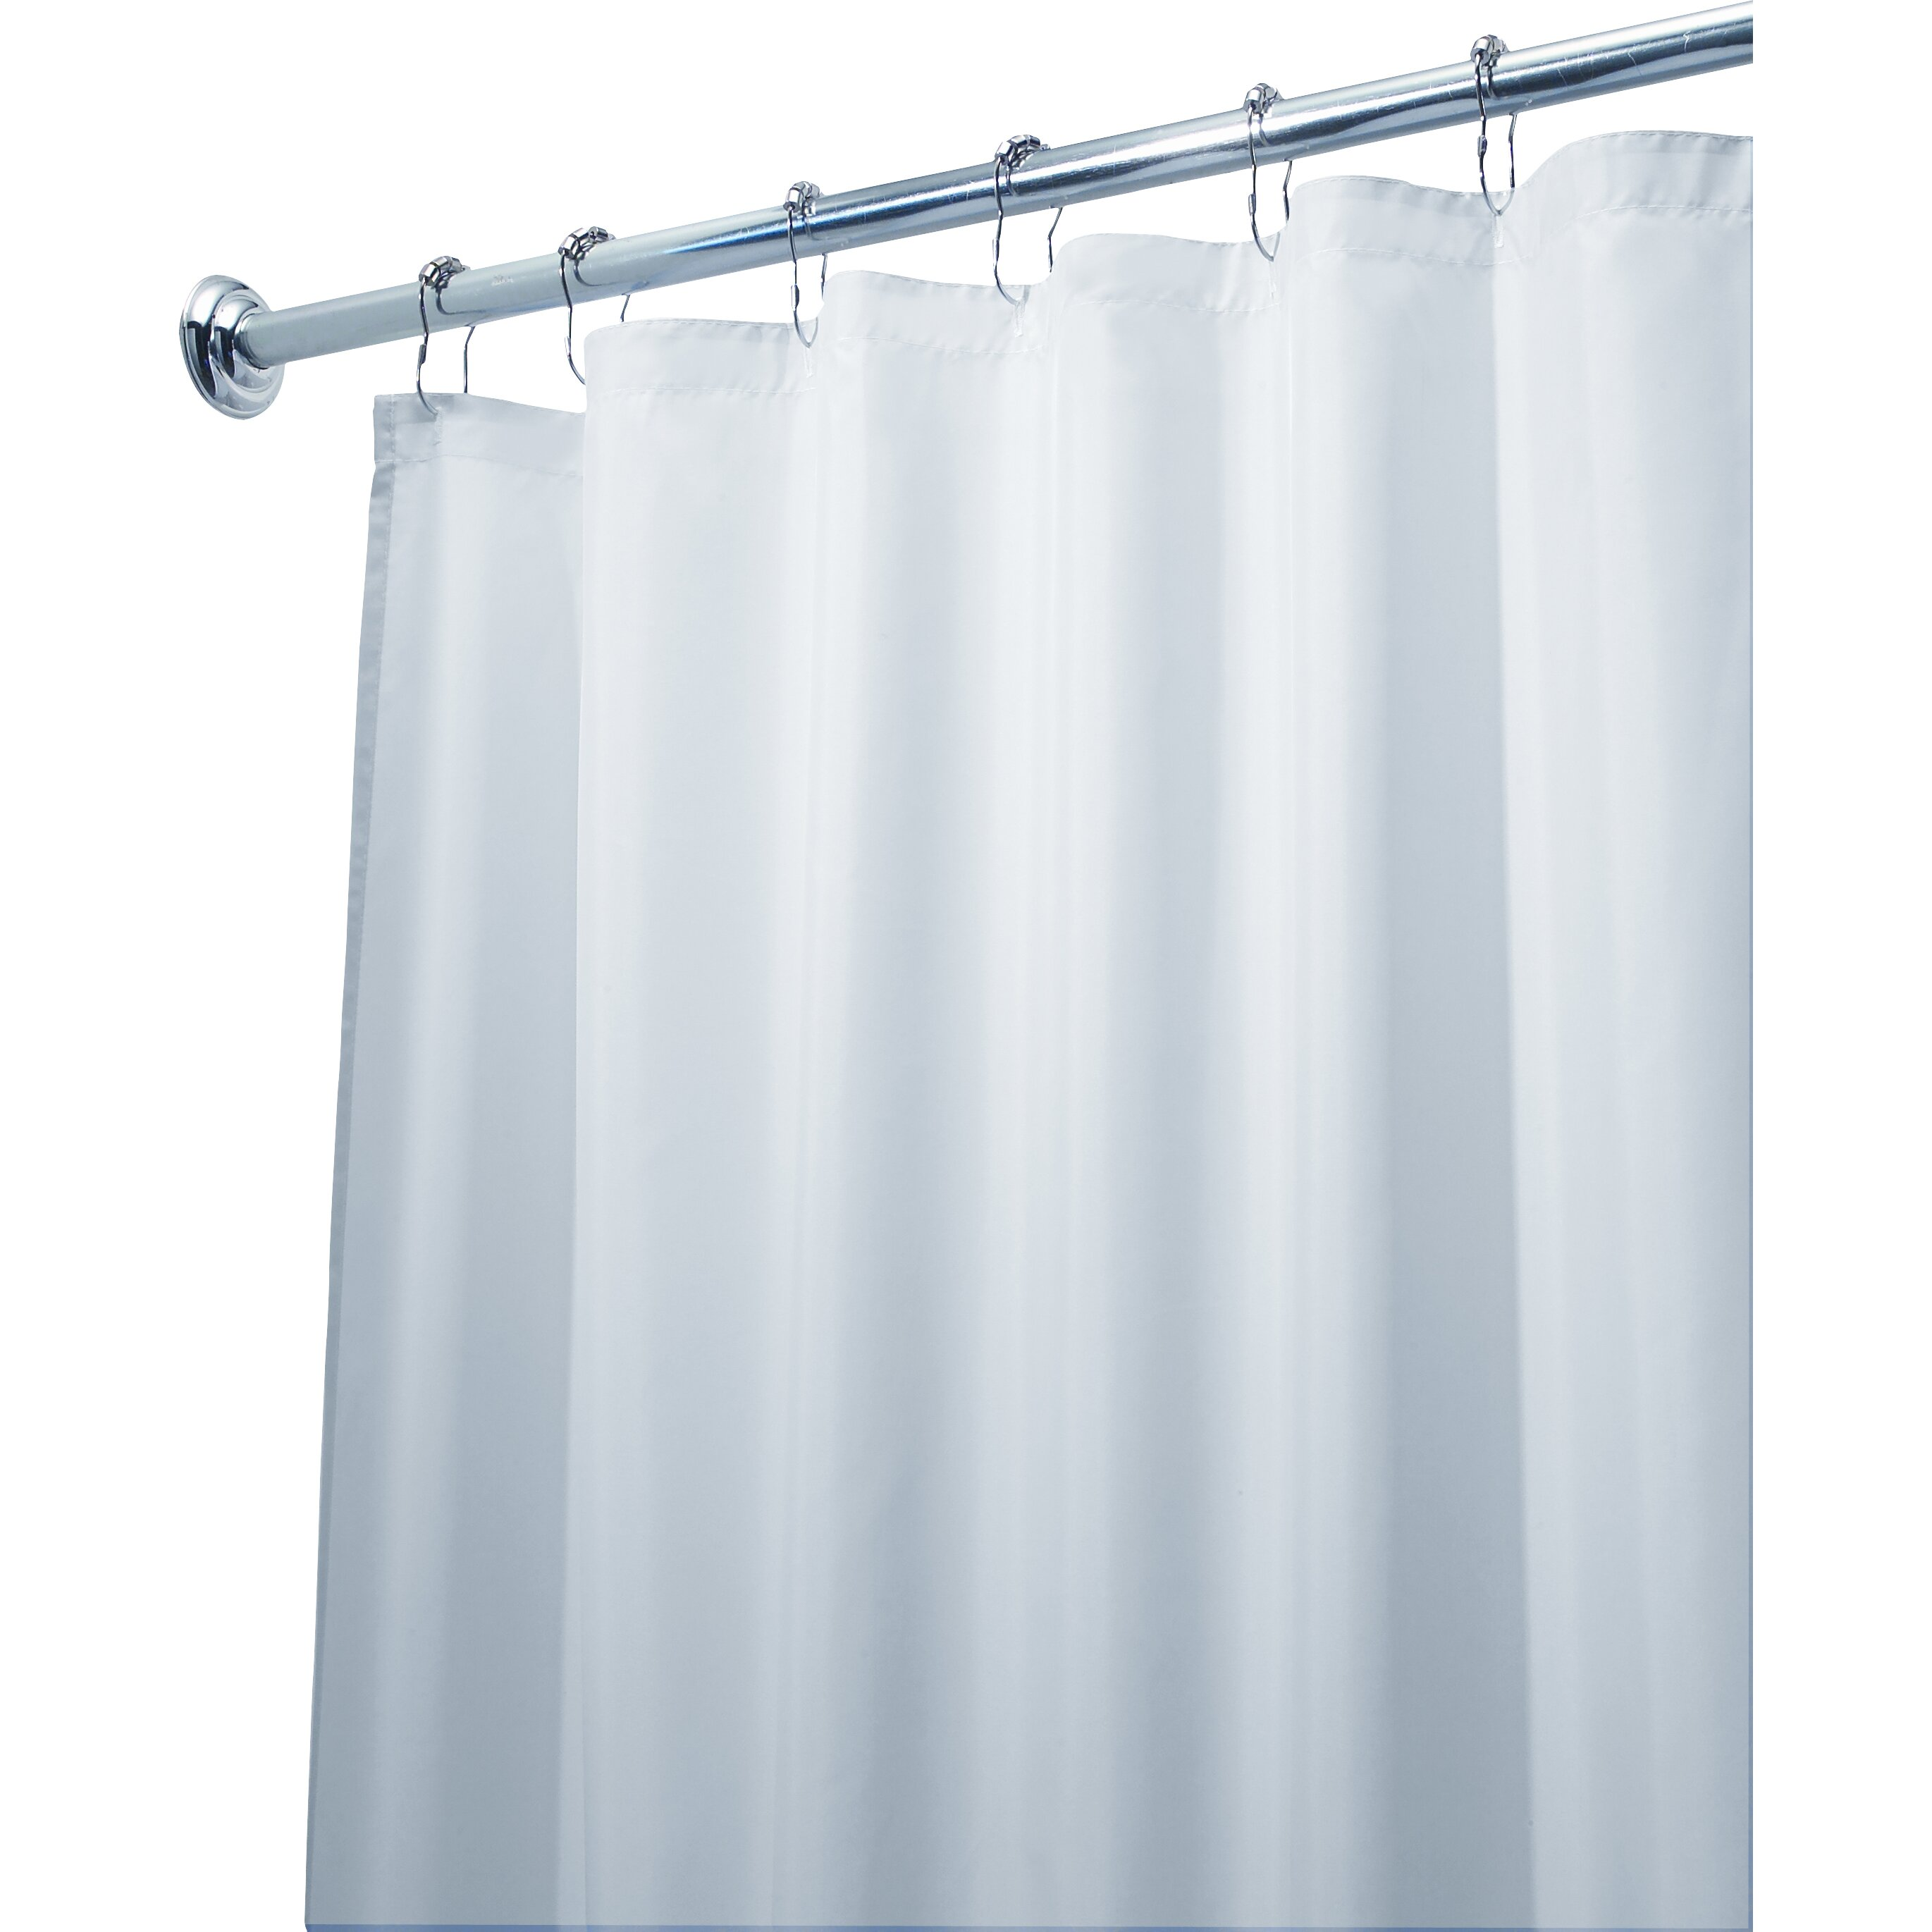 Symple Stuff Waterproof Stall Shower Curtain & Reviews